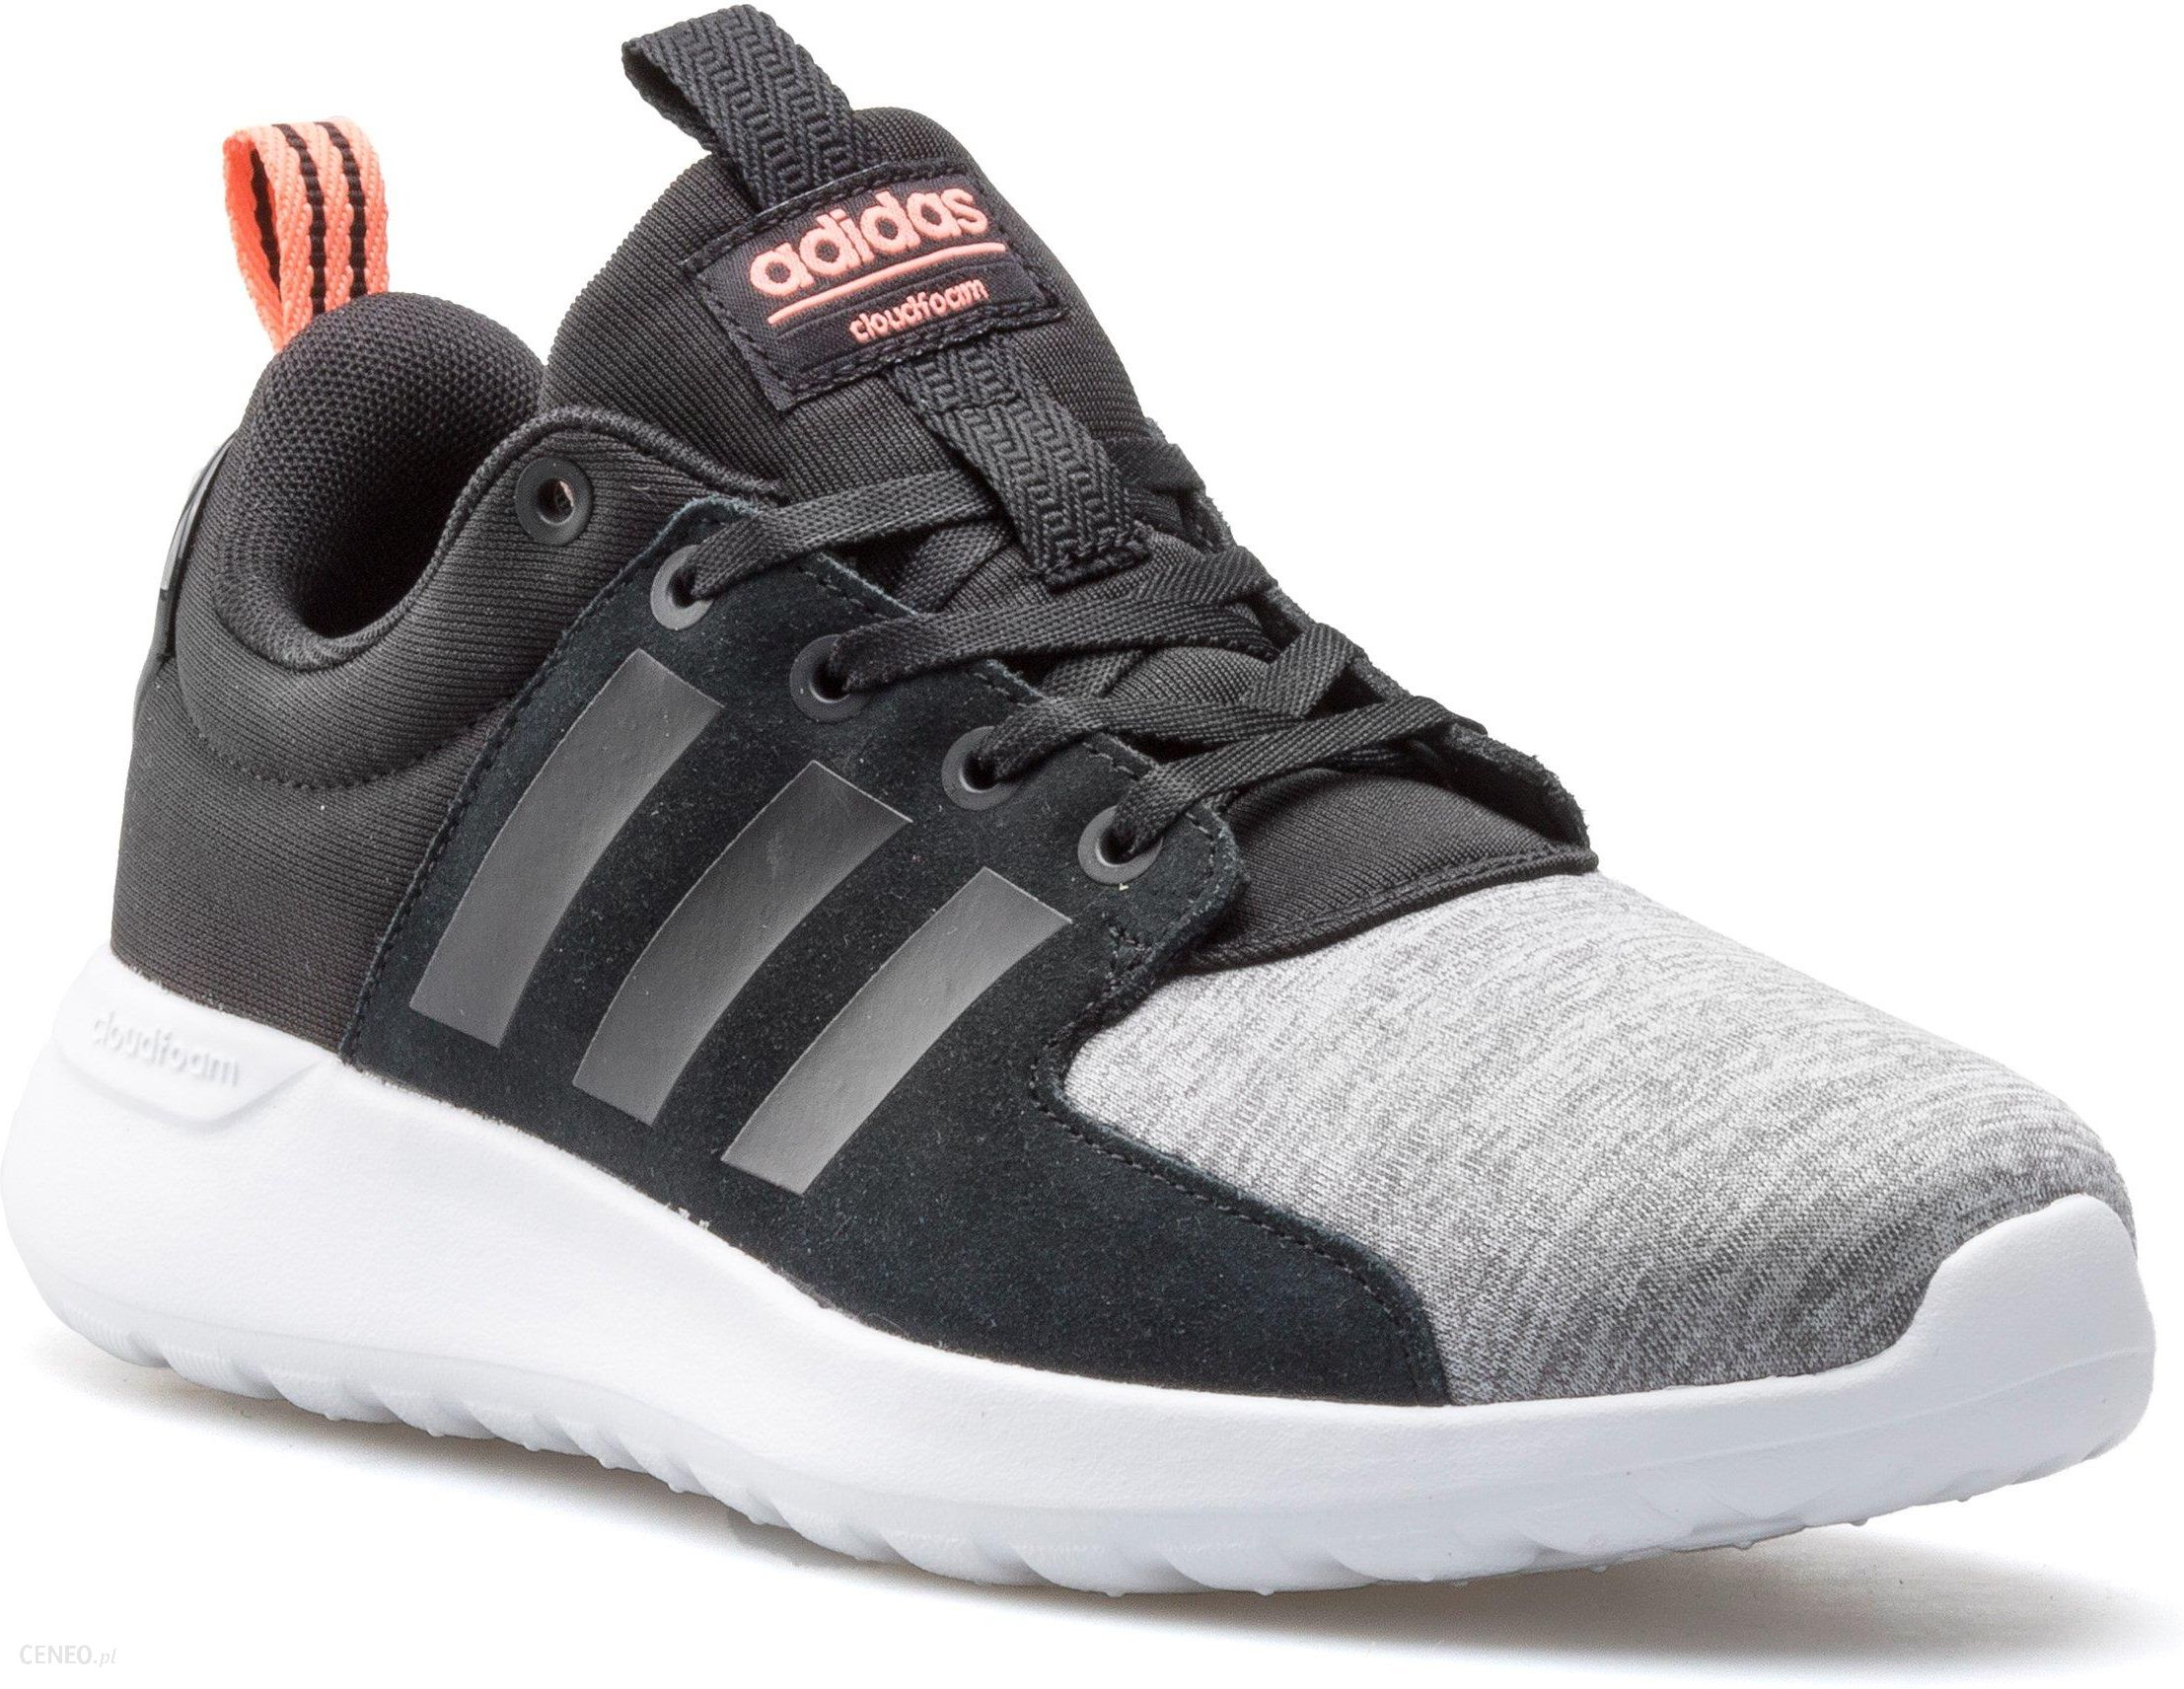 Http Estore 951e8386f5page Https Iebayimgcom Adidas Alphabounce Enginereed Amp039mesh Grey Black I Buty Cloudfoam Lite Racer Aw4036 R 38 2 3